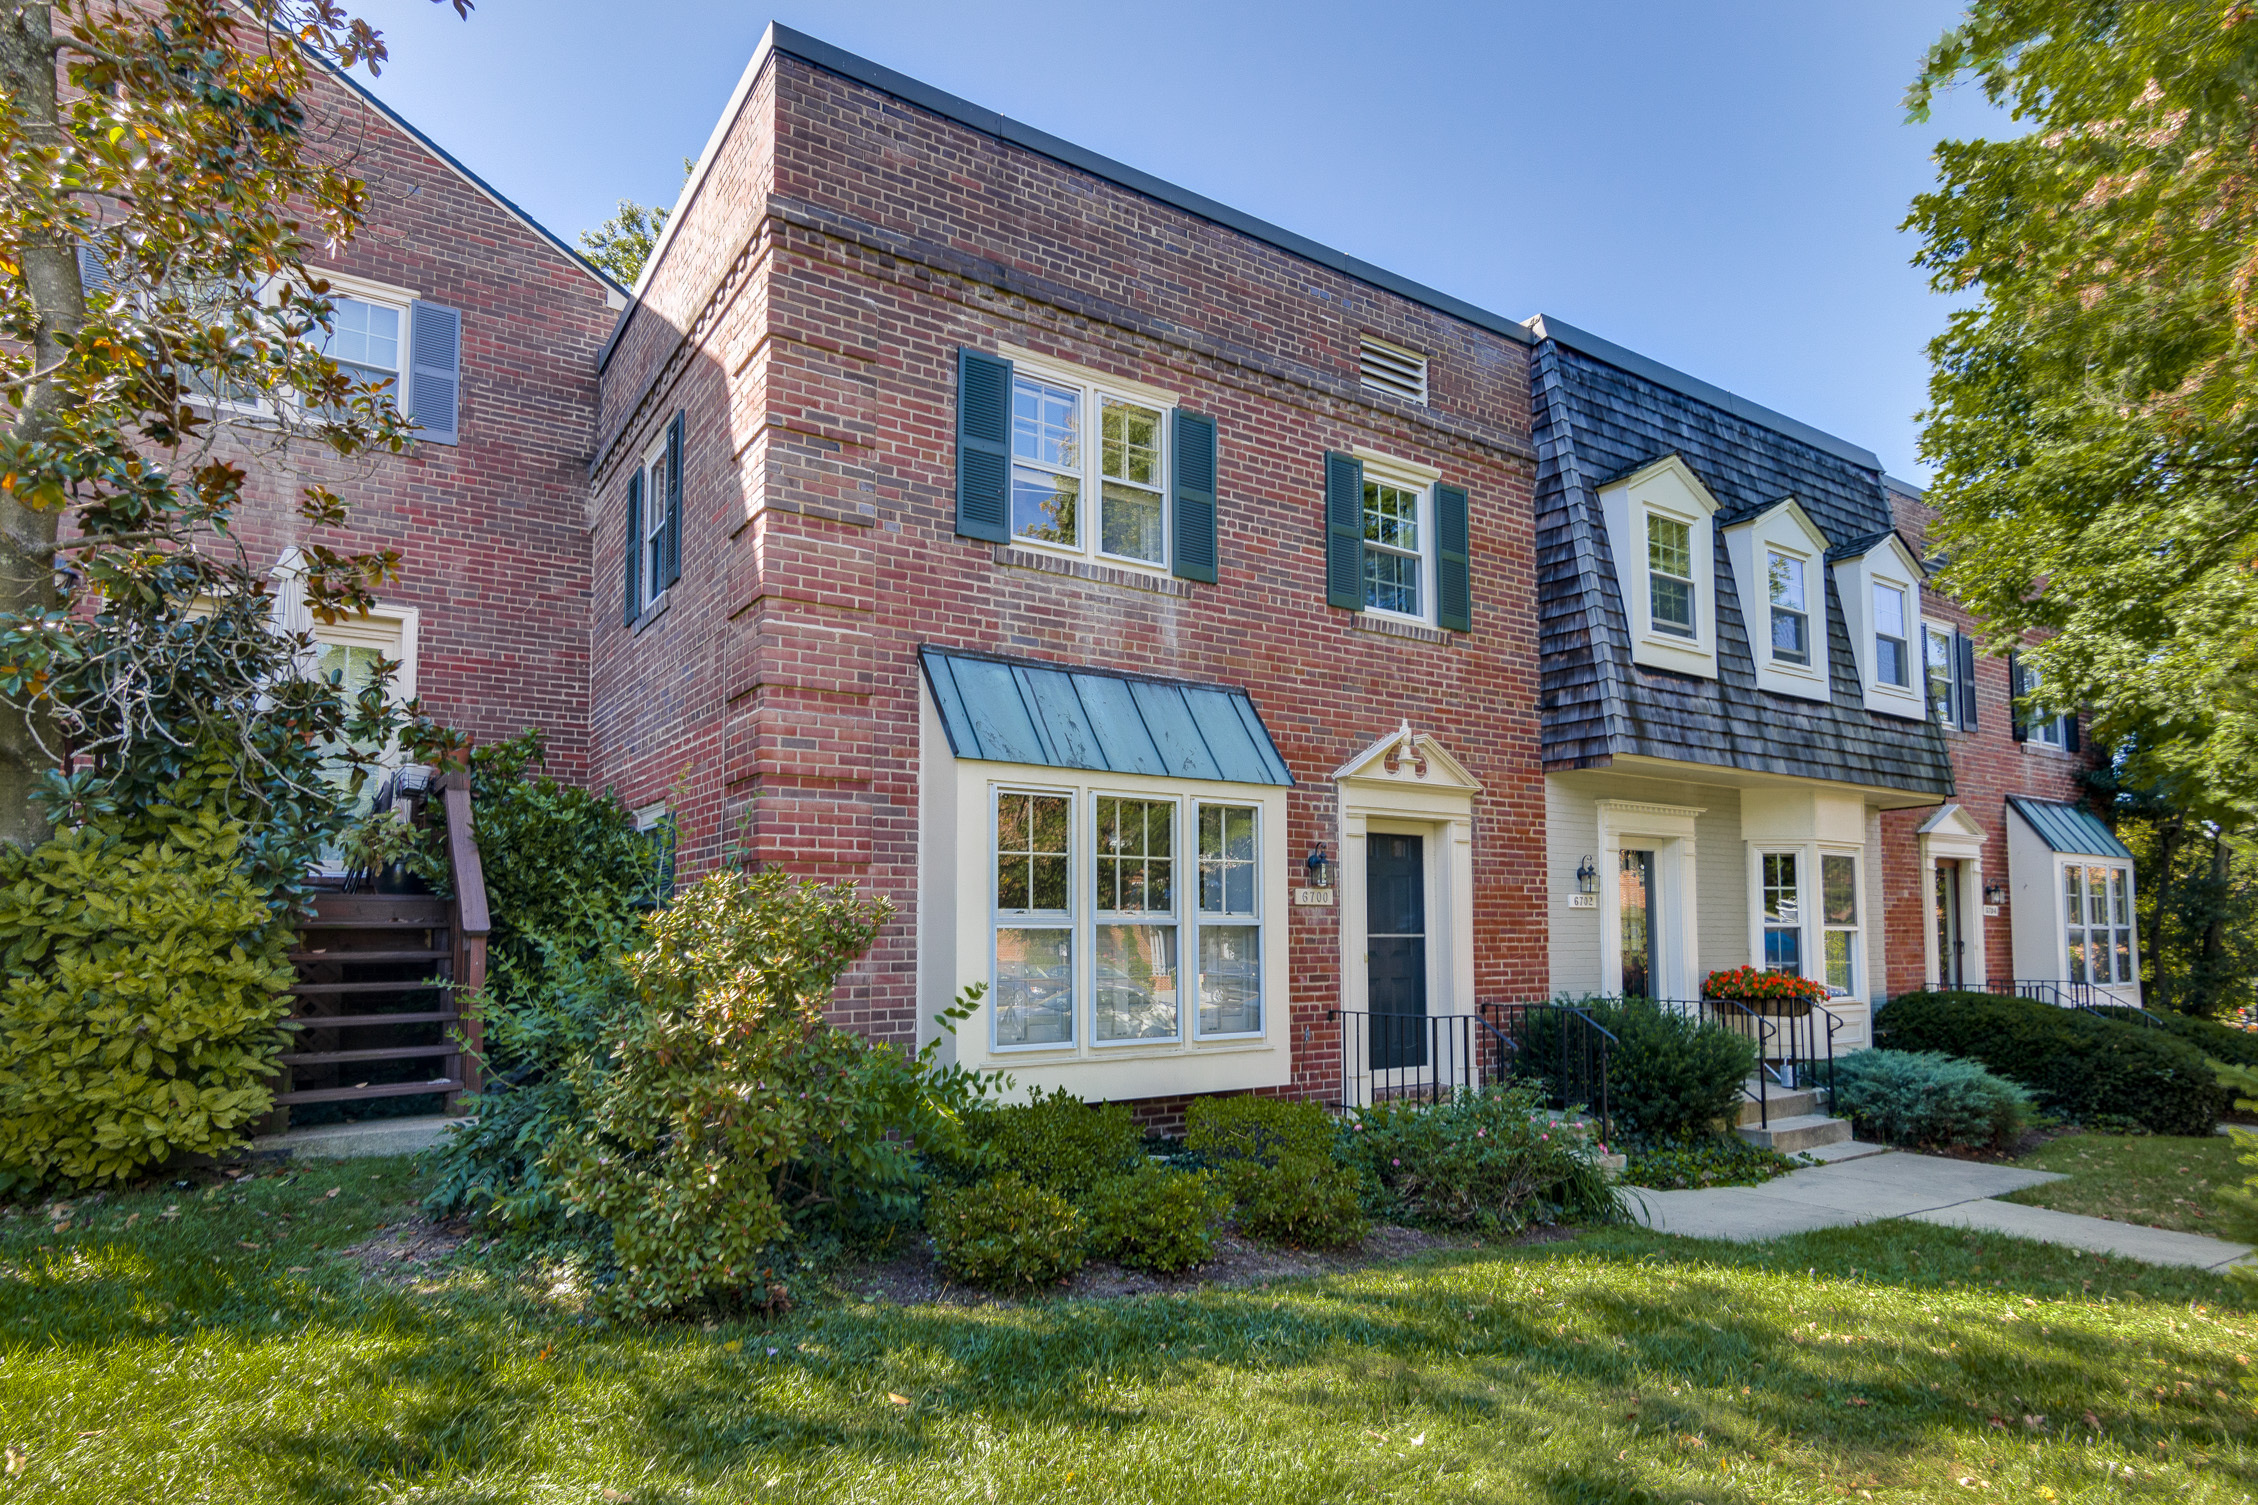 6700 Offutt Lane Chevy Chase listed by Lise Howe 240-401-5577